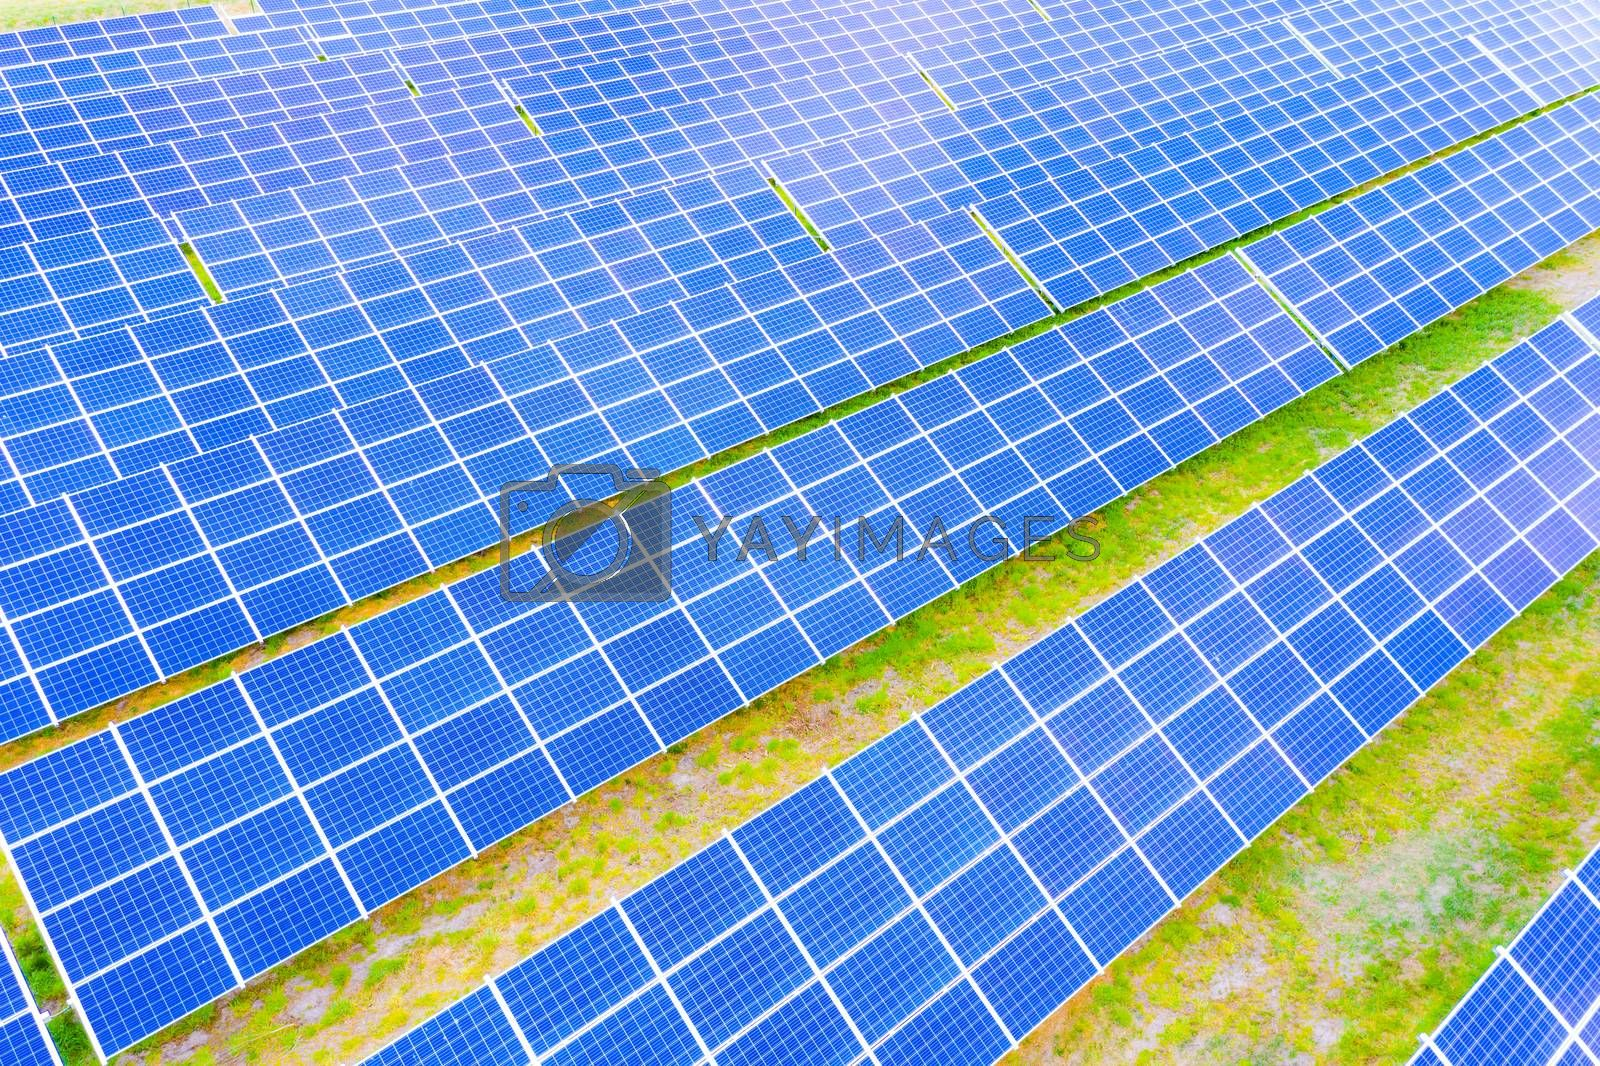 power solar panel on blue sky background,alternative clean green energy concept. Aerial view of Solar panels Photovoltaic systems industrial landscape